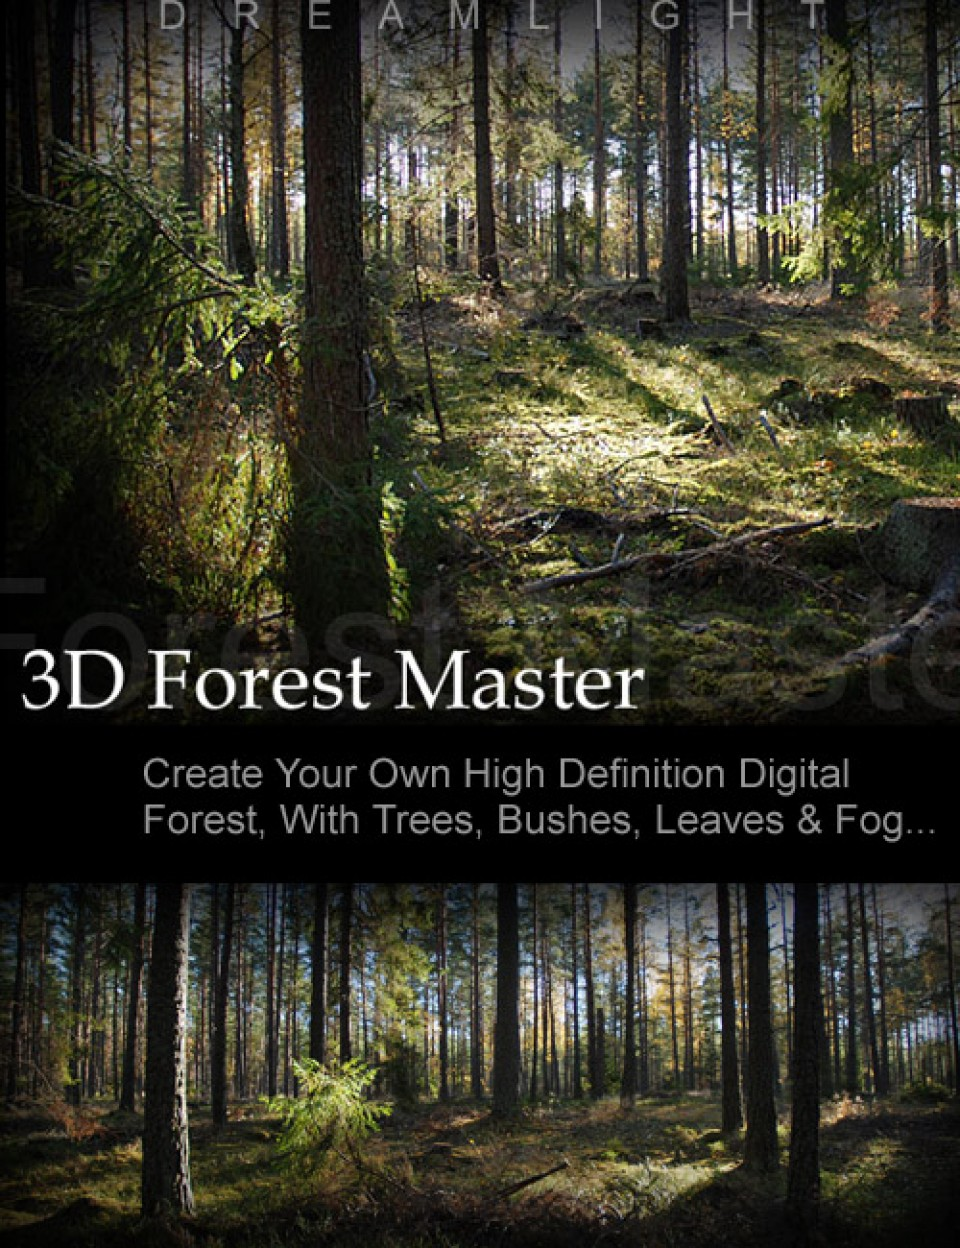 3D Forest Master